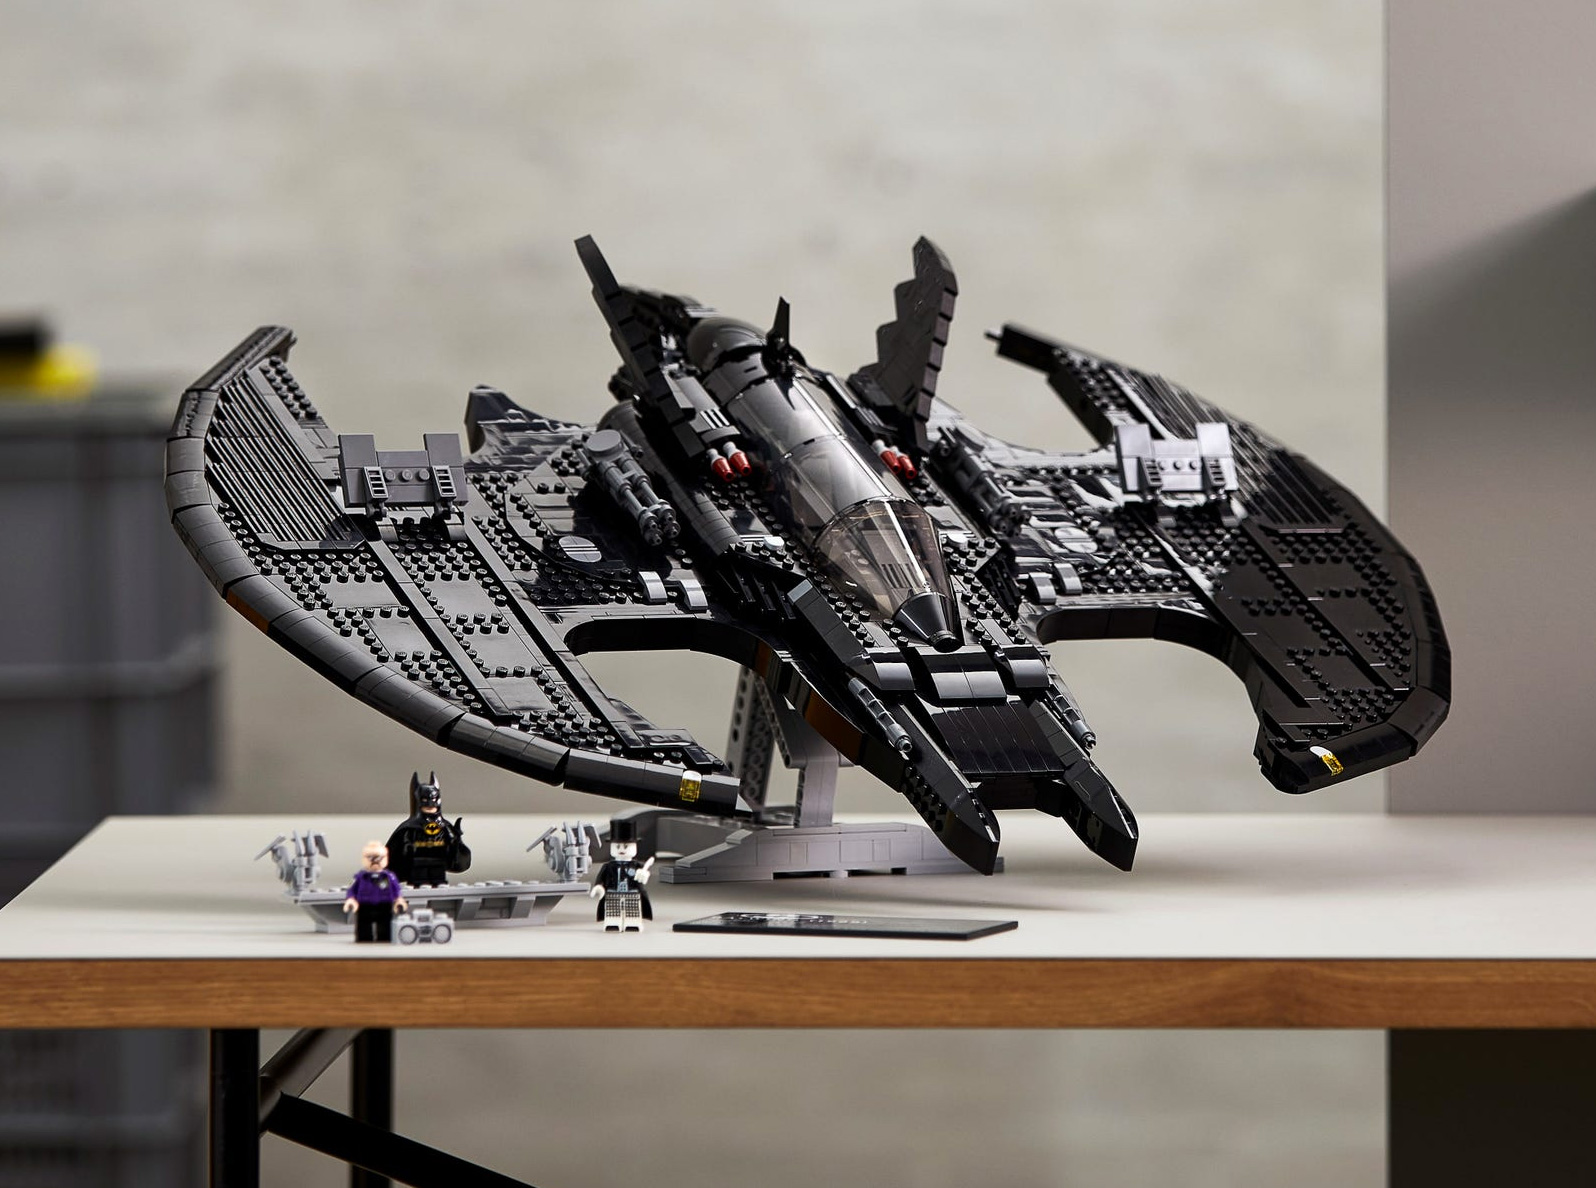 Big Build: LEGO Batman 1989 Batwing at werd.com